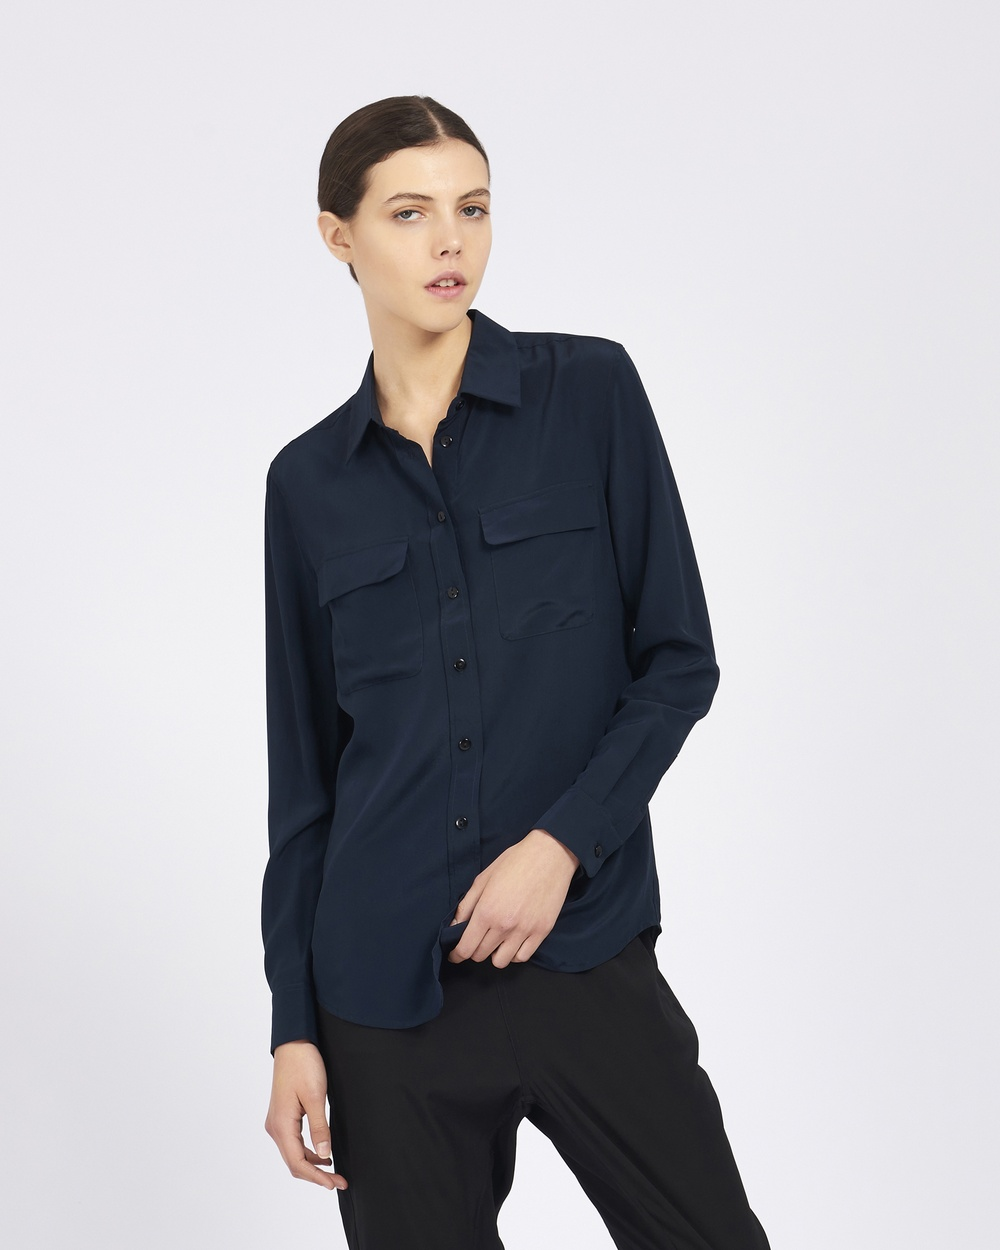 GINIA RTW Poppy Silk Shirt Tops Navy Poppy Silk Shirt